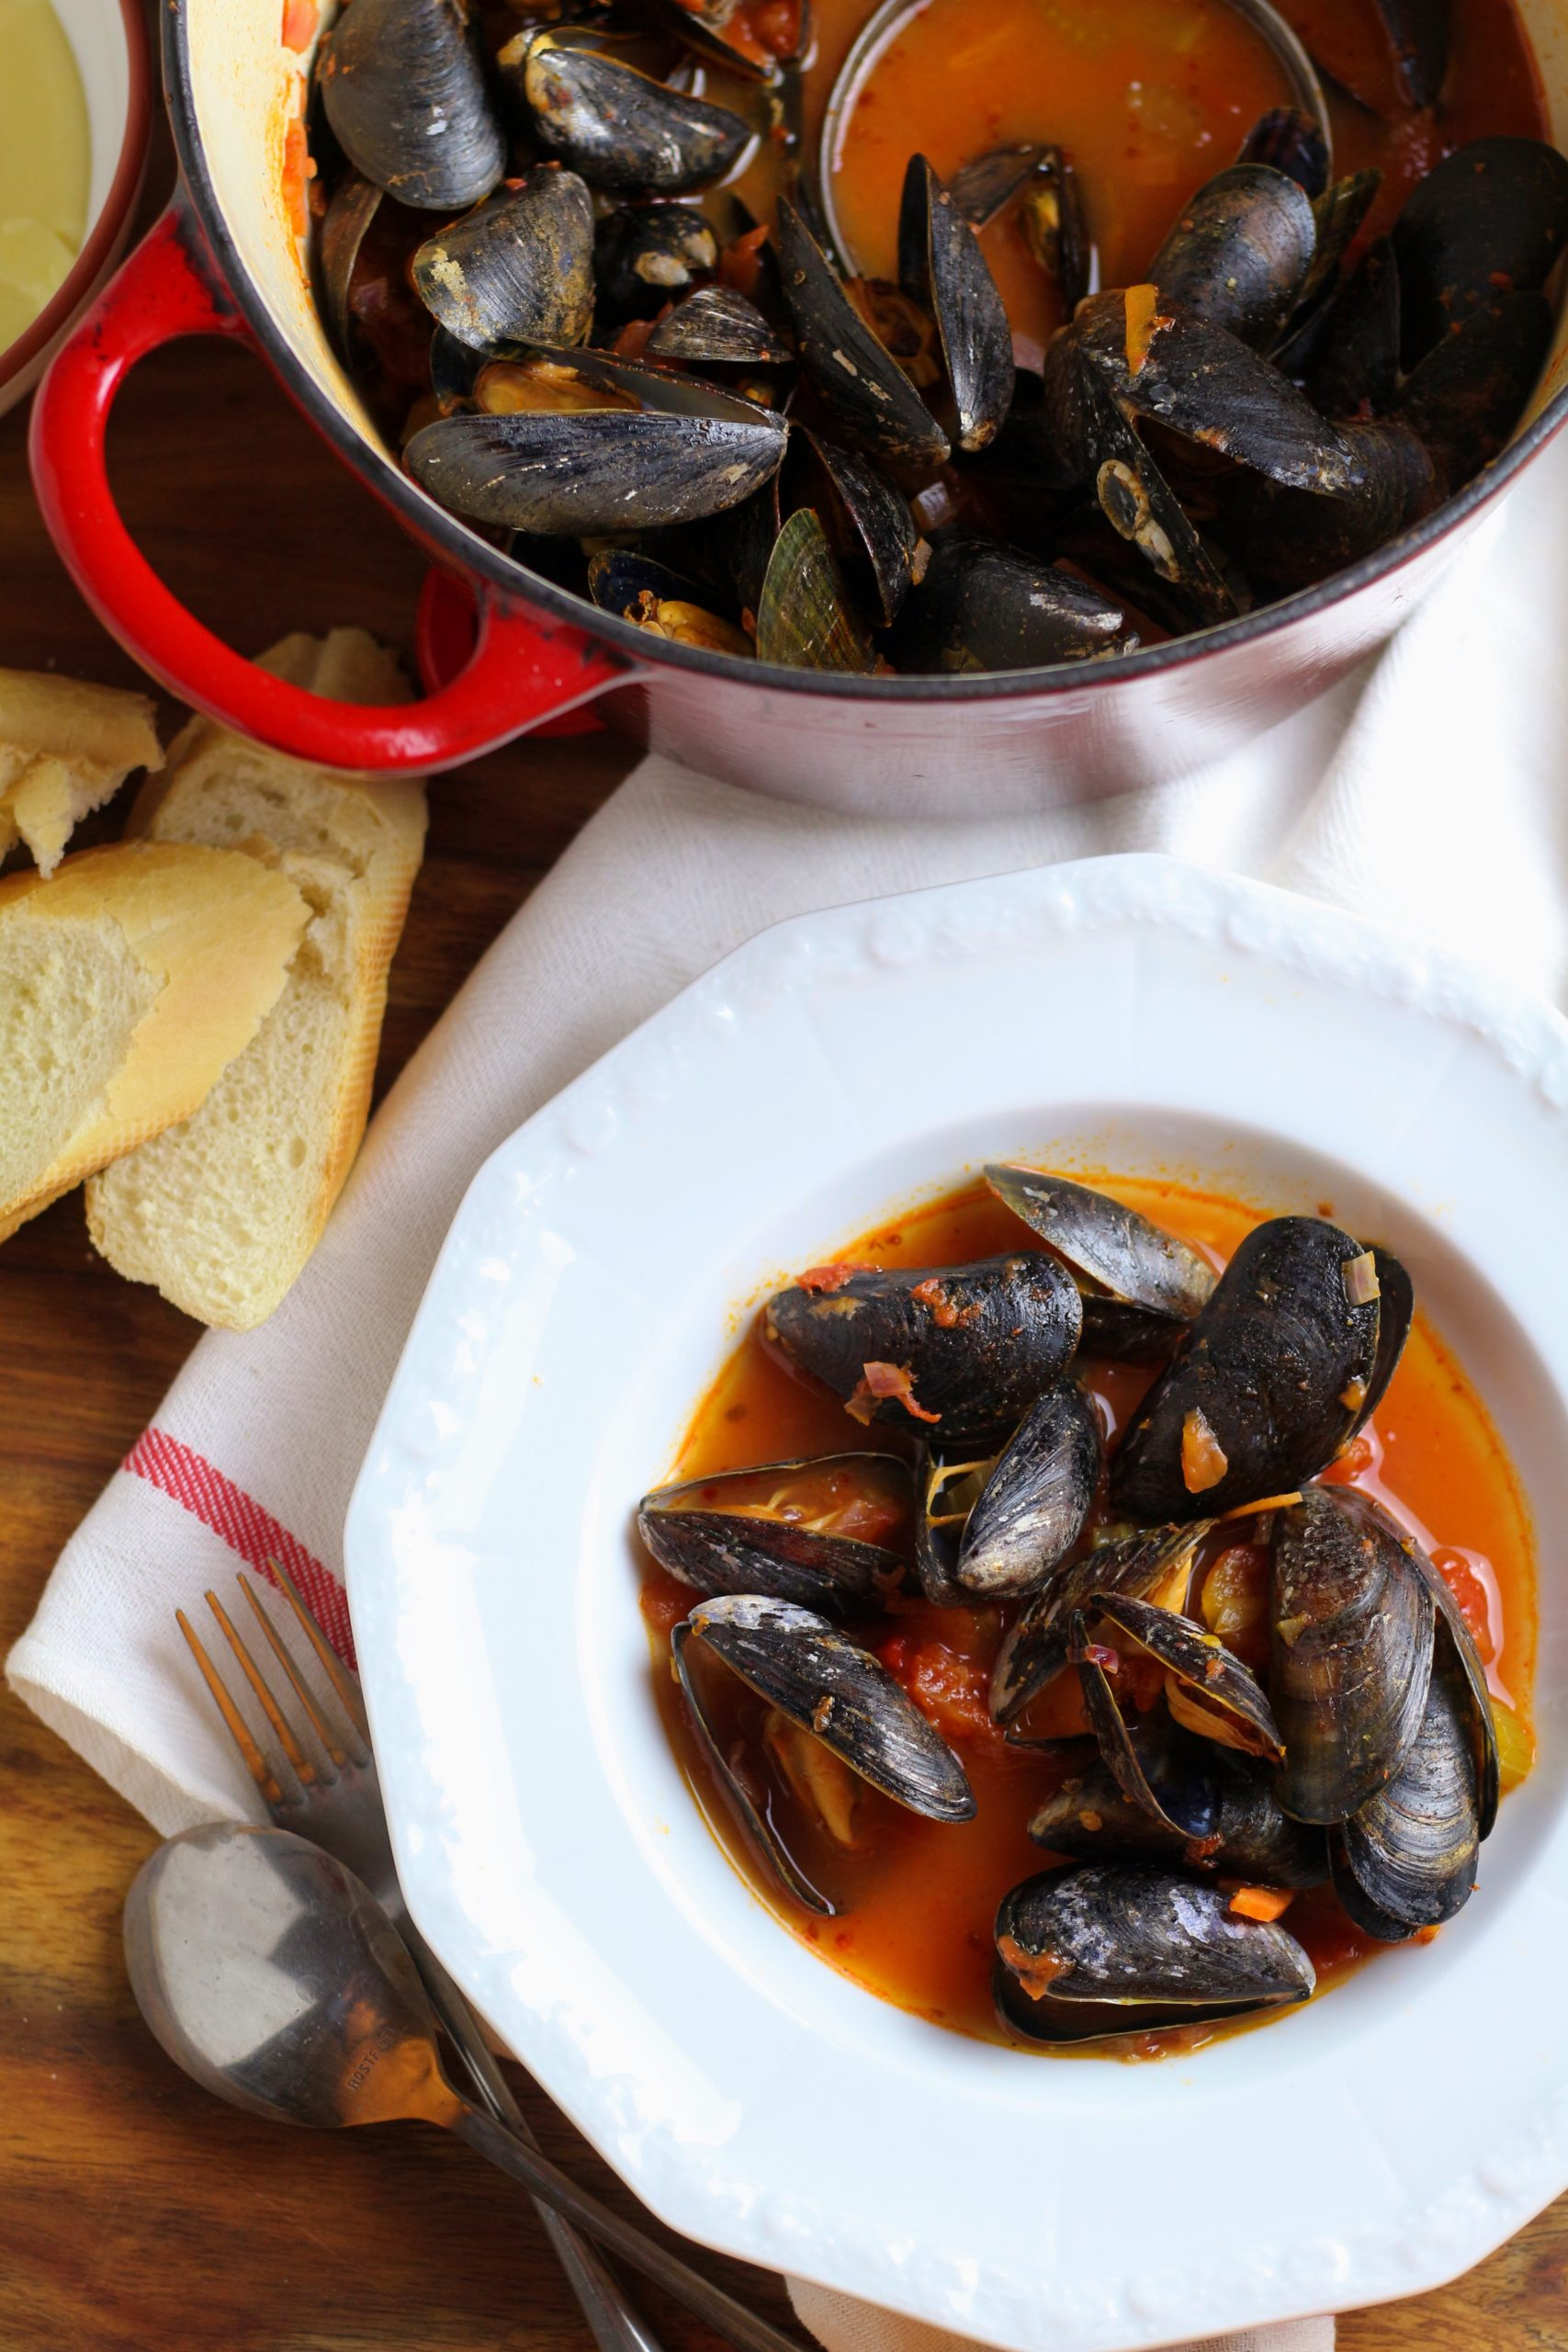 Spicy Tomato and Garlic Mussels